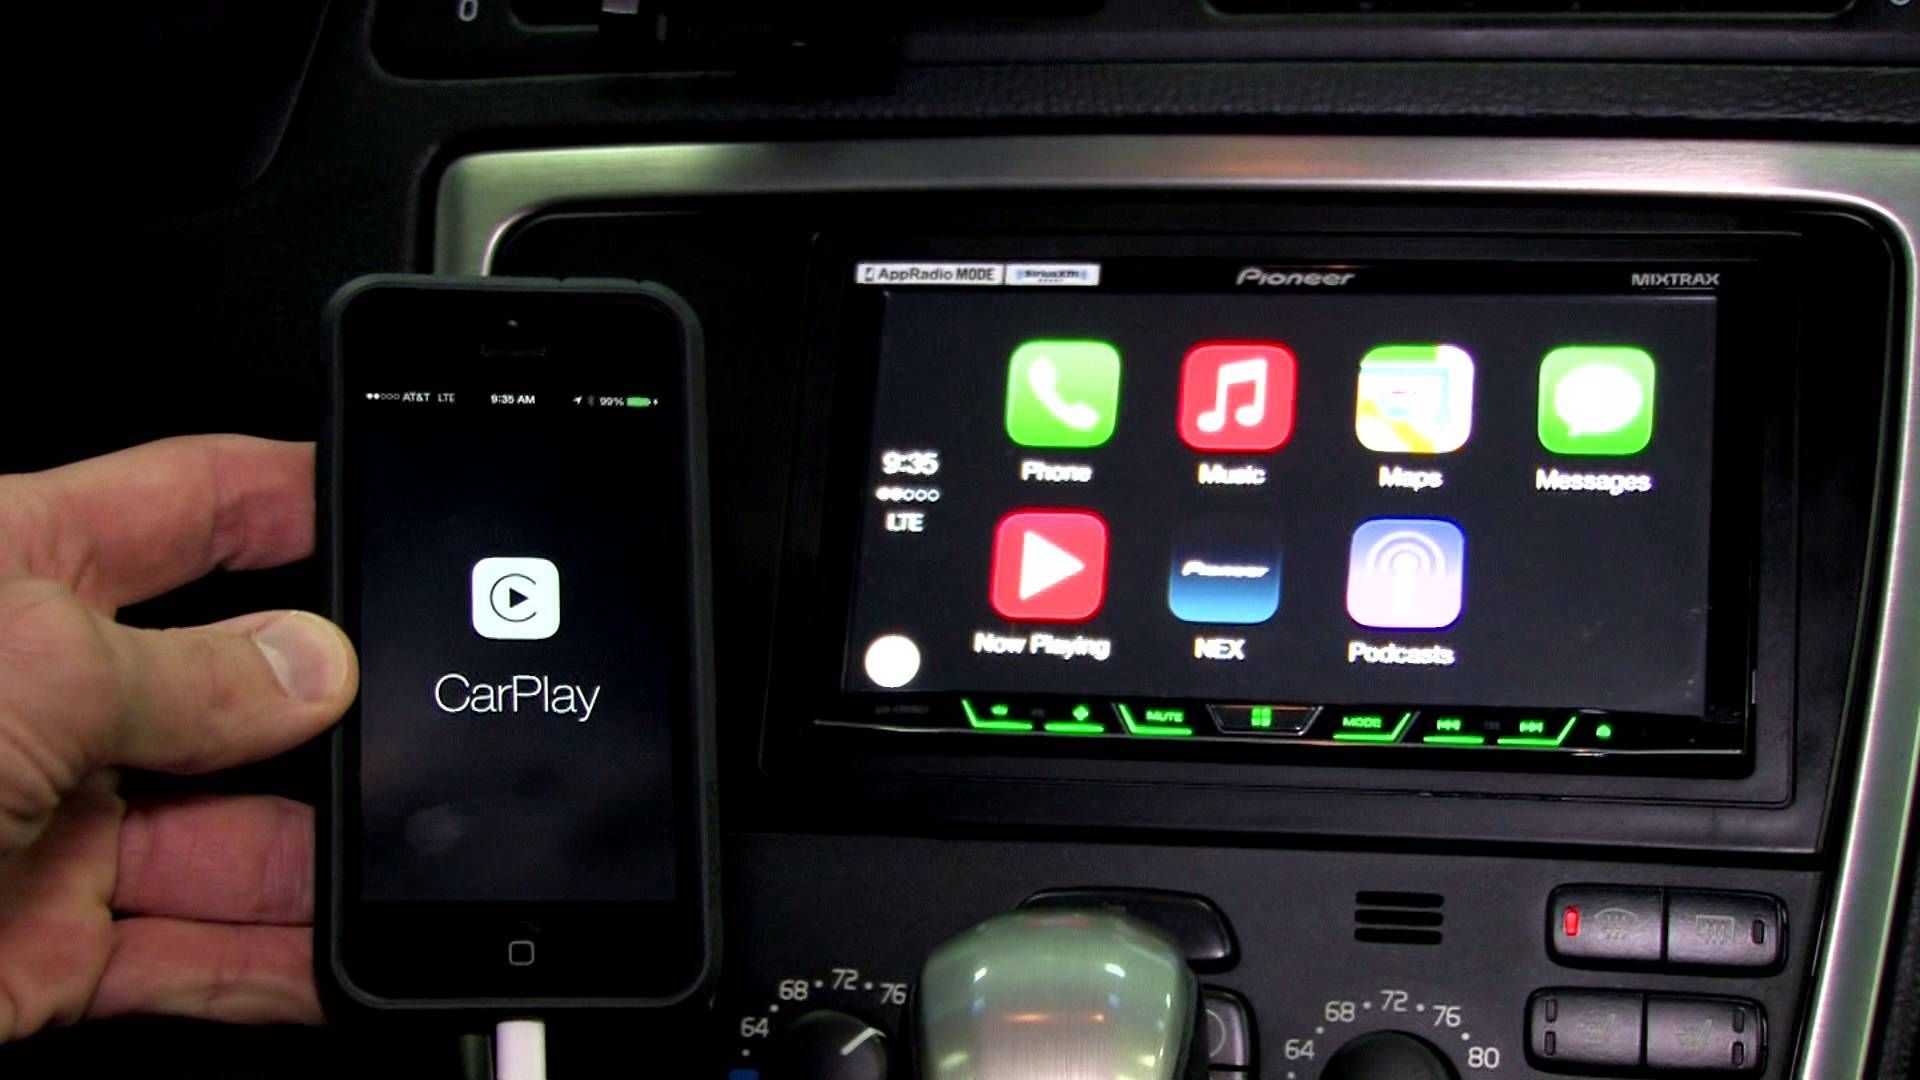 Use your iPhone apps on your car's touch screen. Apple